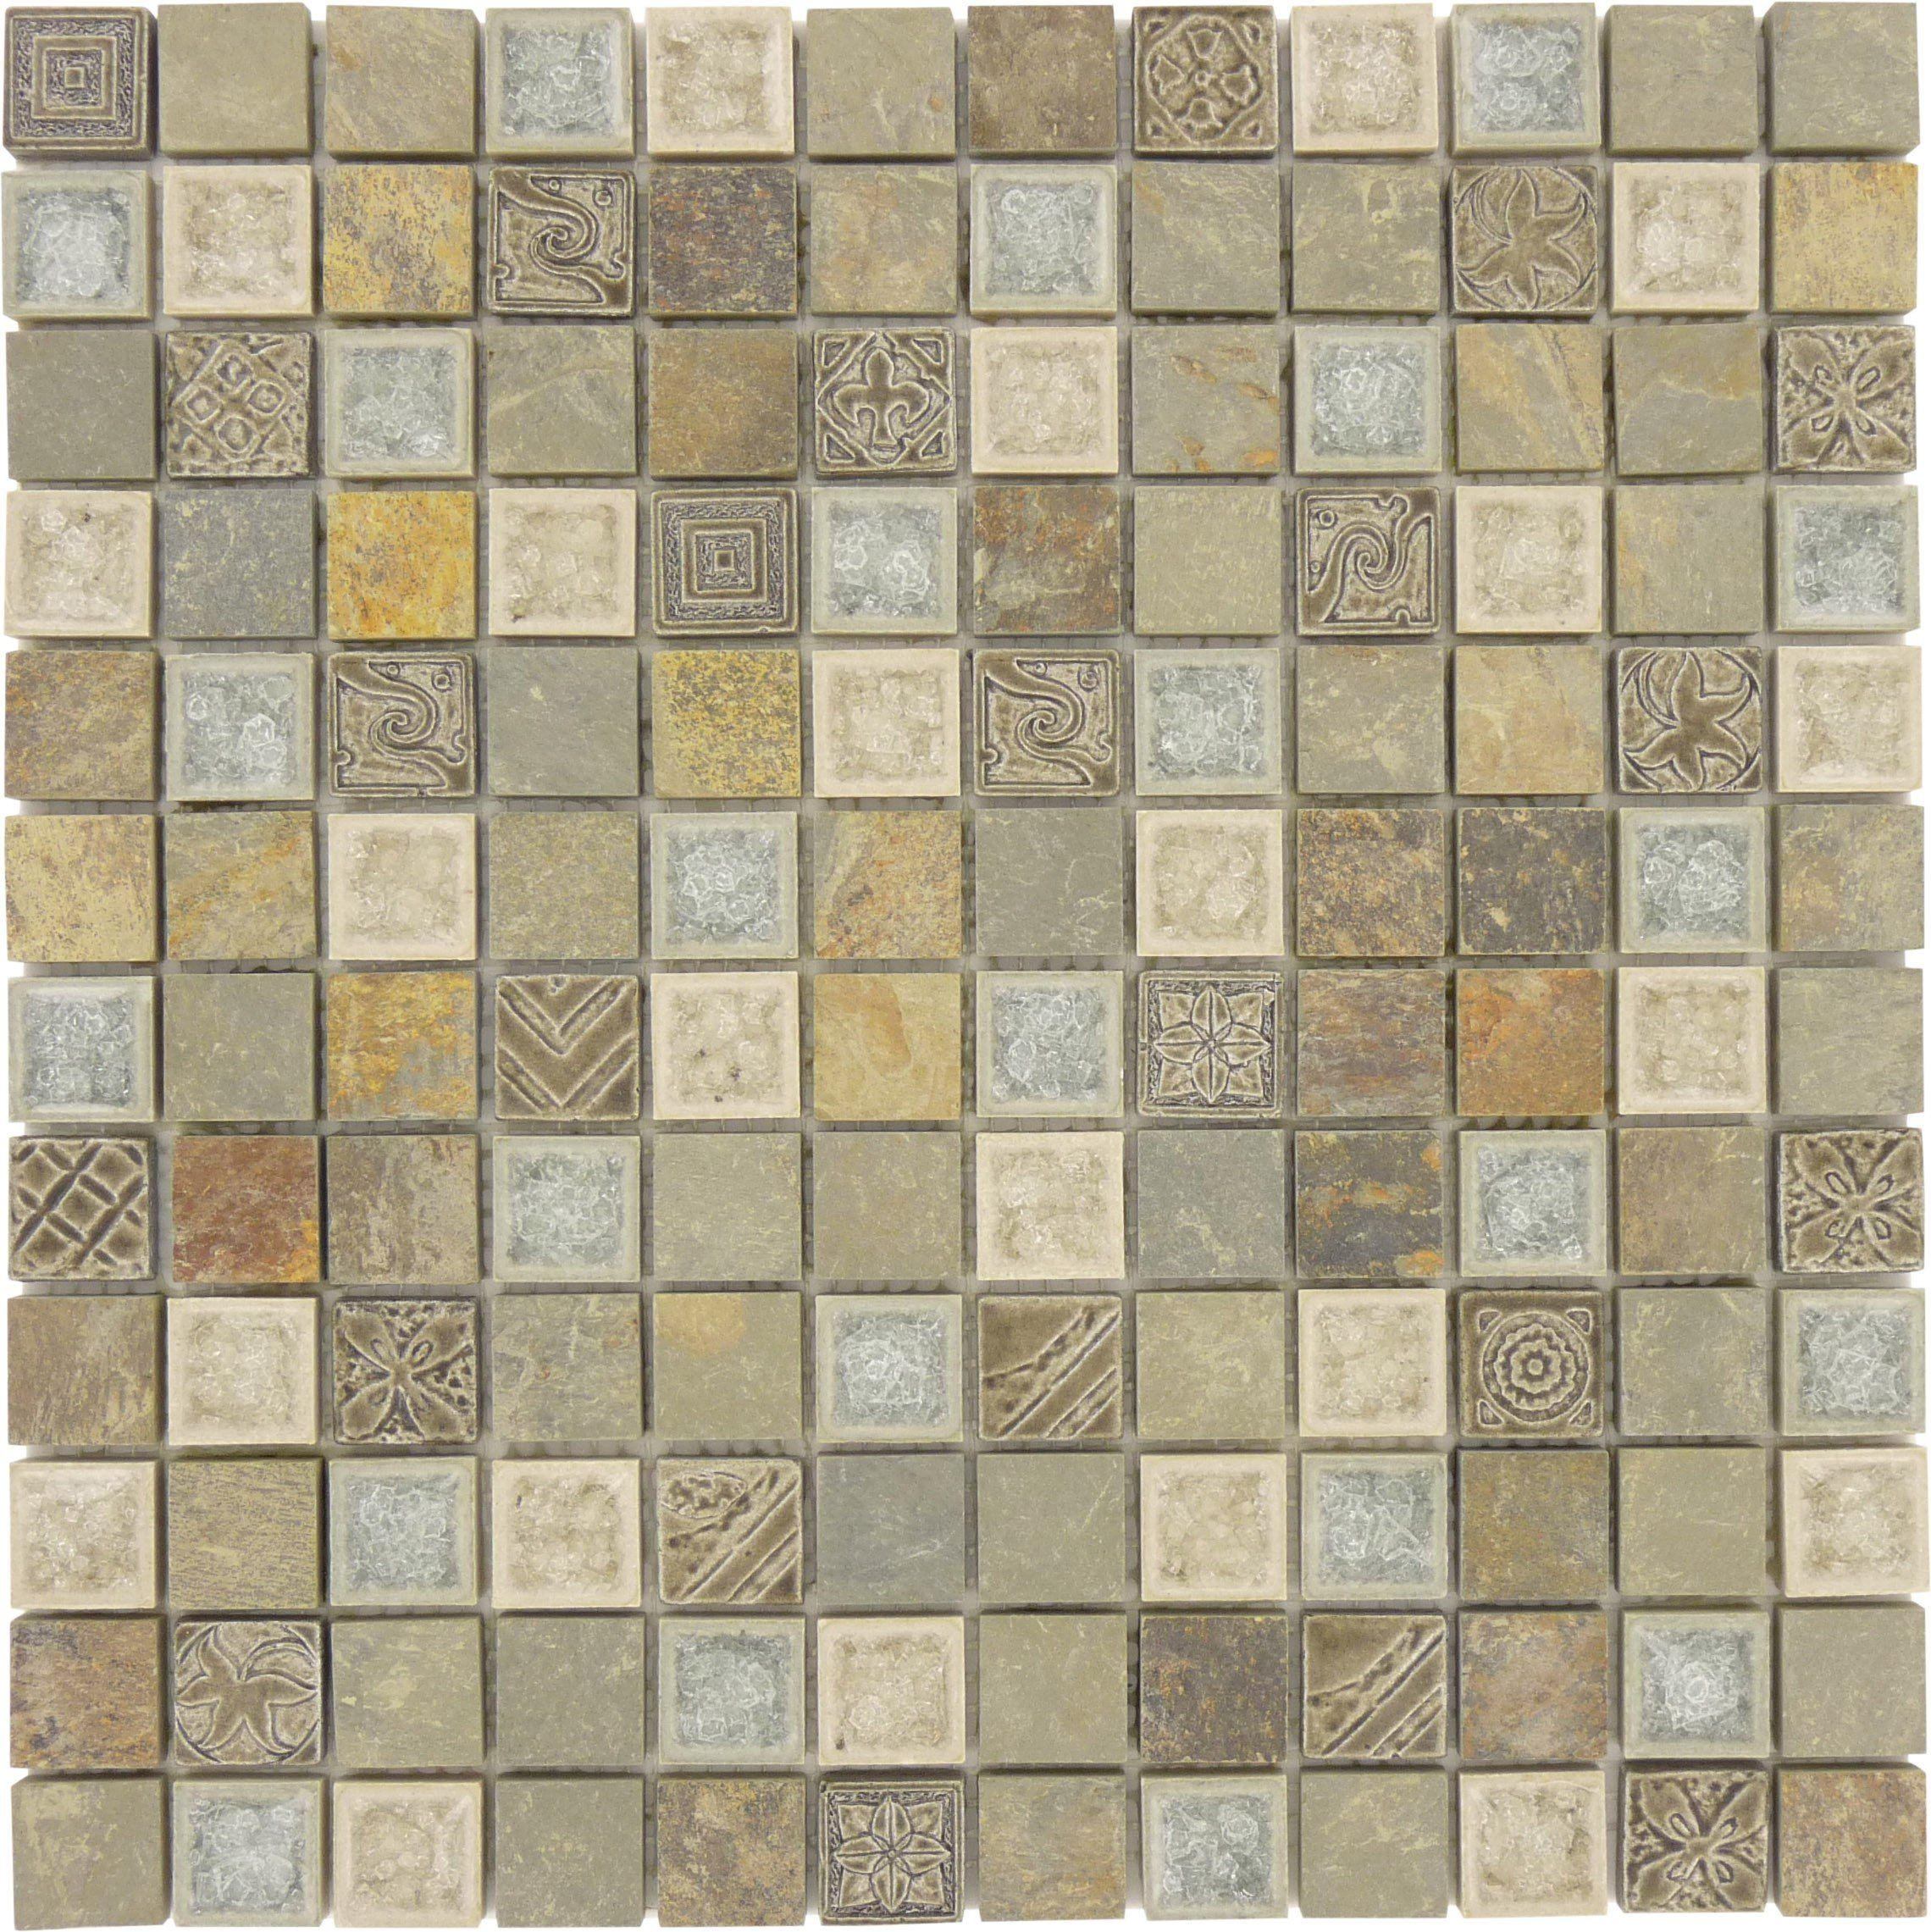 1 X 1 Grey Glass And Stone Square Tile Tumbled Ts 906 Grey Glass Tiles Square Tile